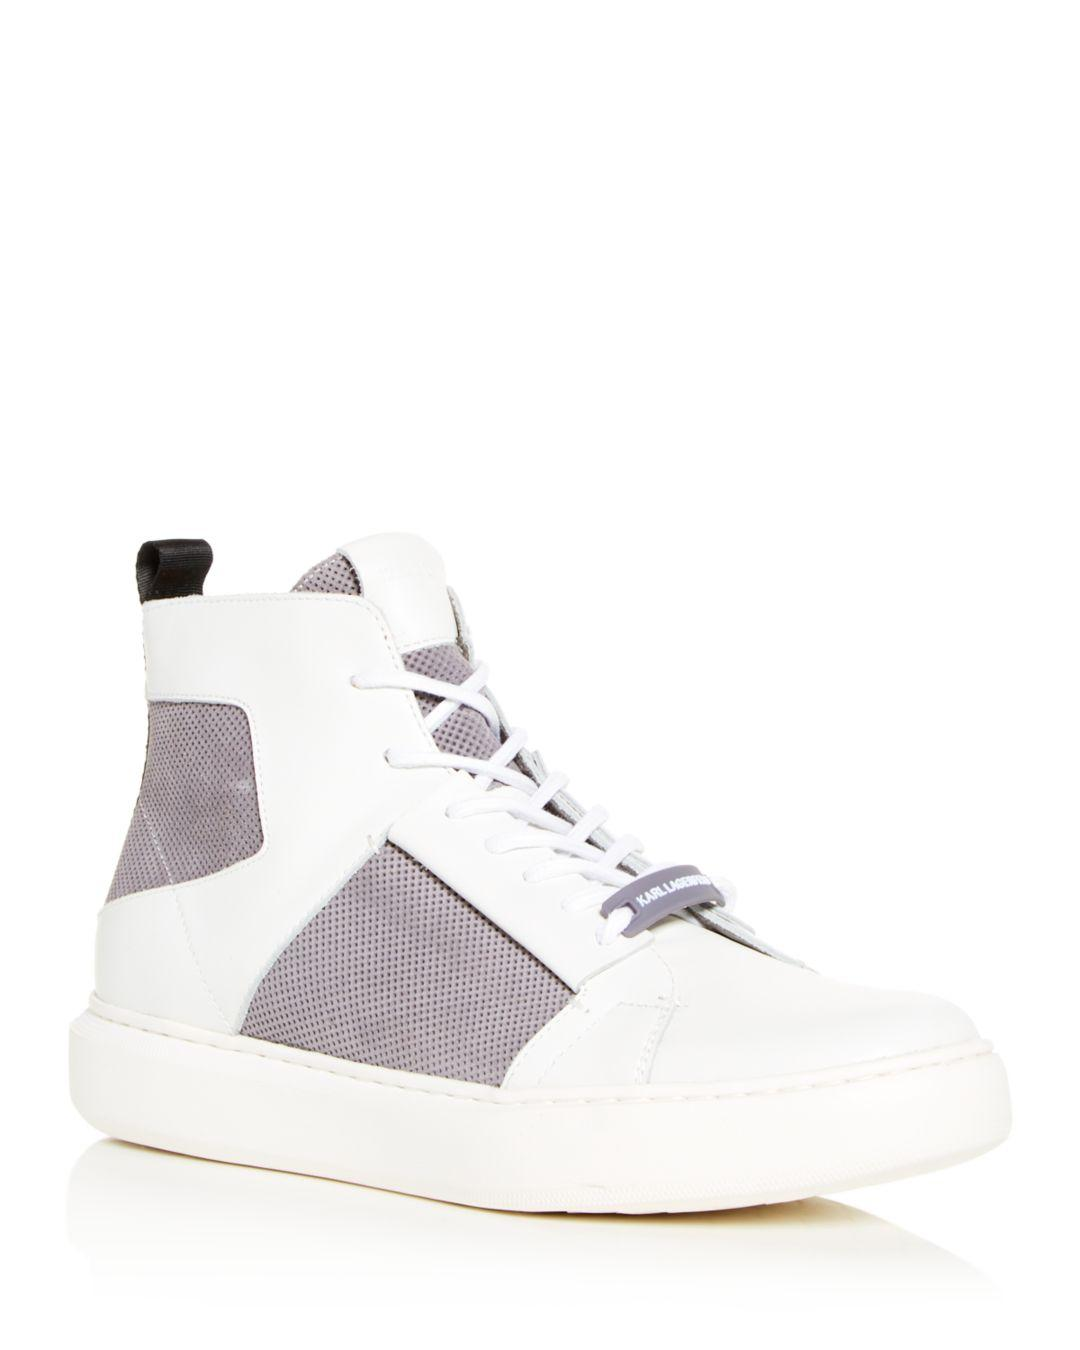 Lyst - Karl Lagerfeld Men s Leather   Suede High-top Sneakers in ... 506e89e7a